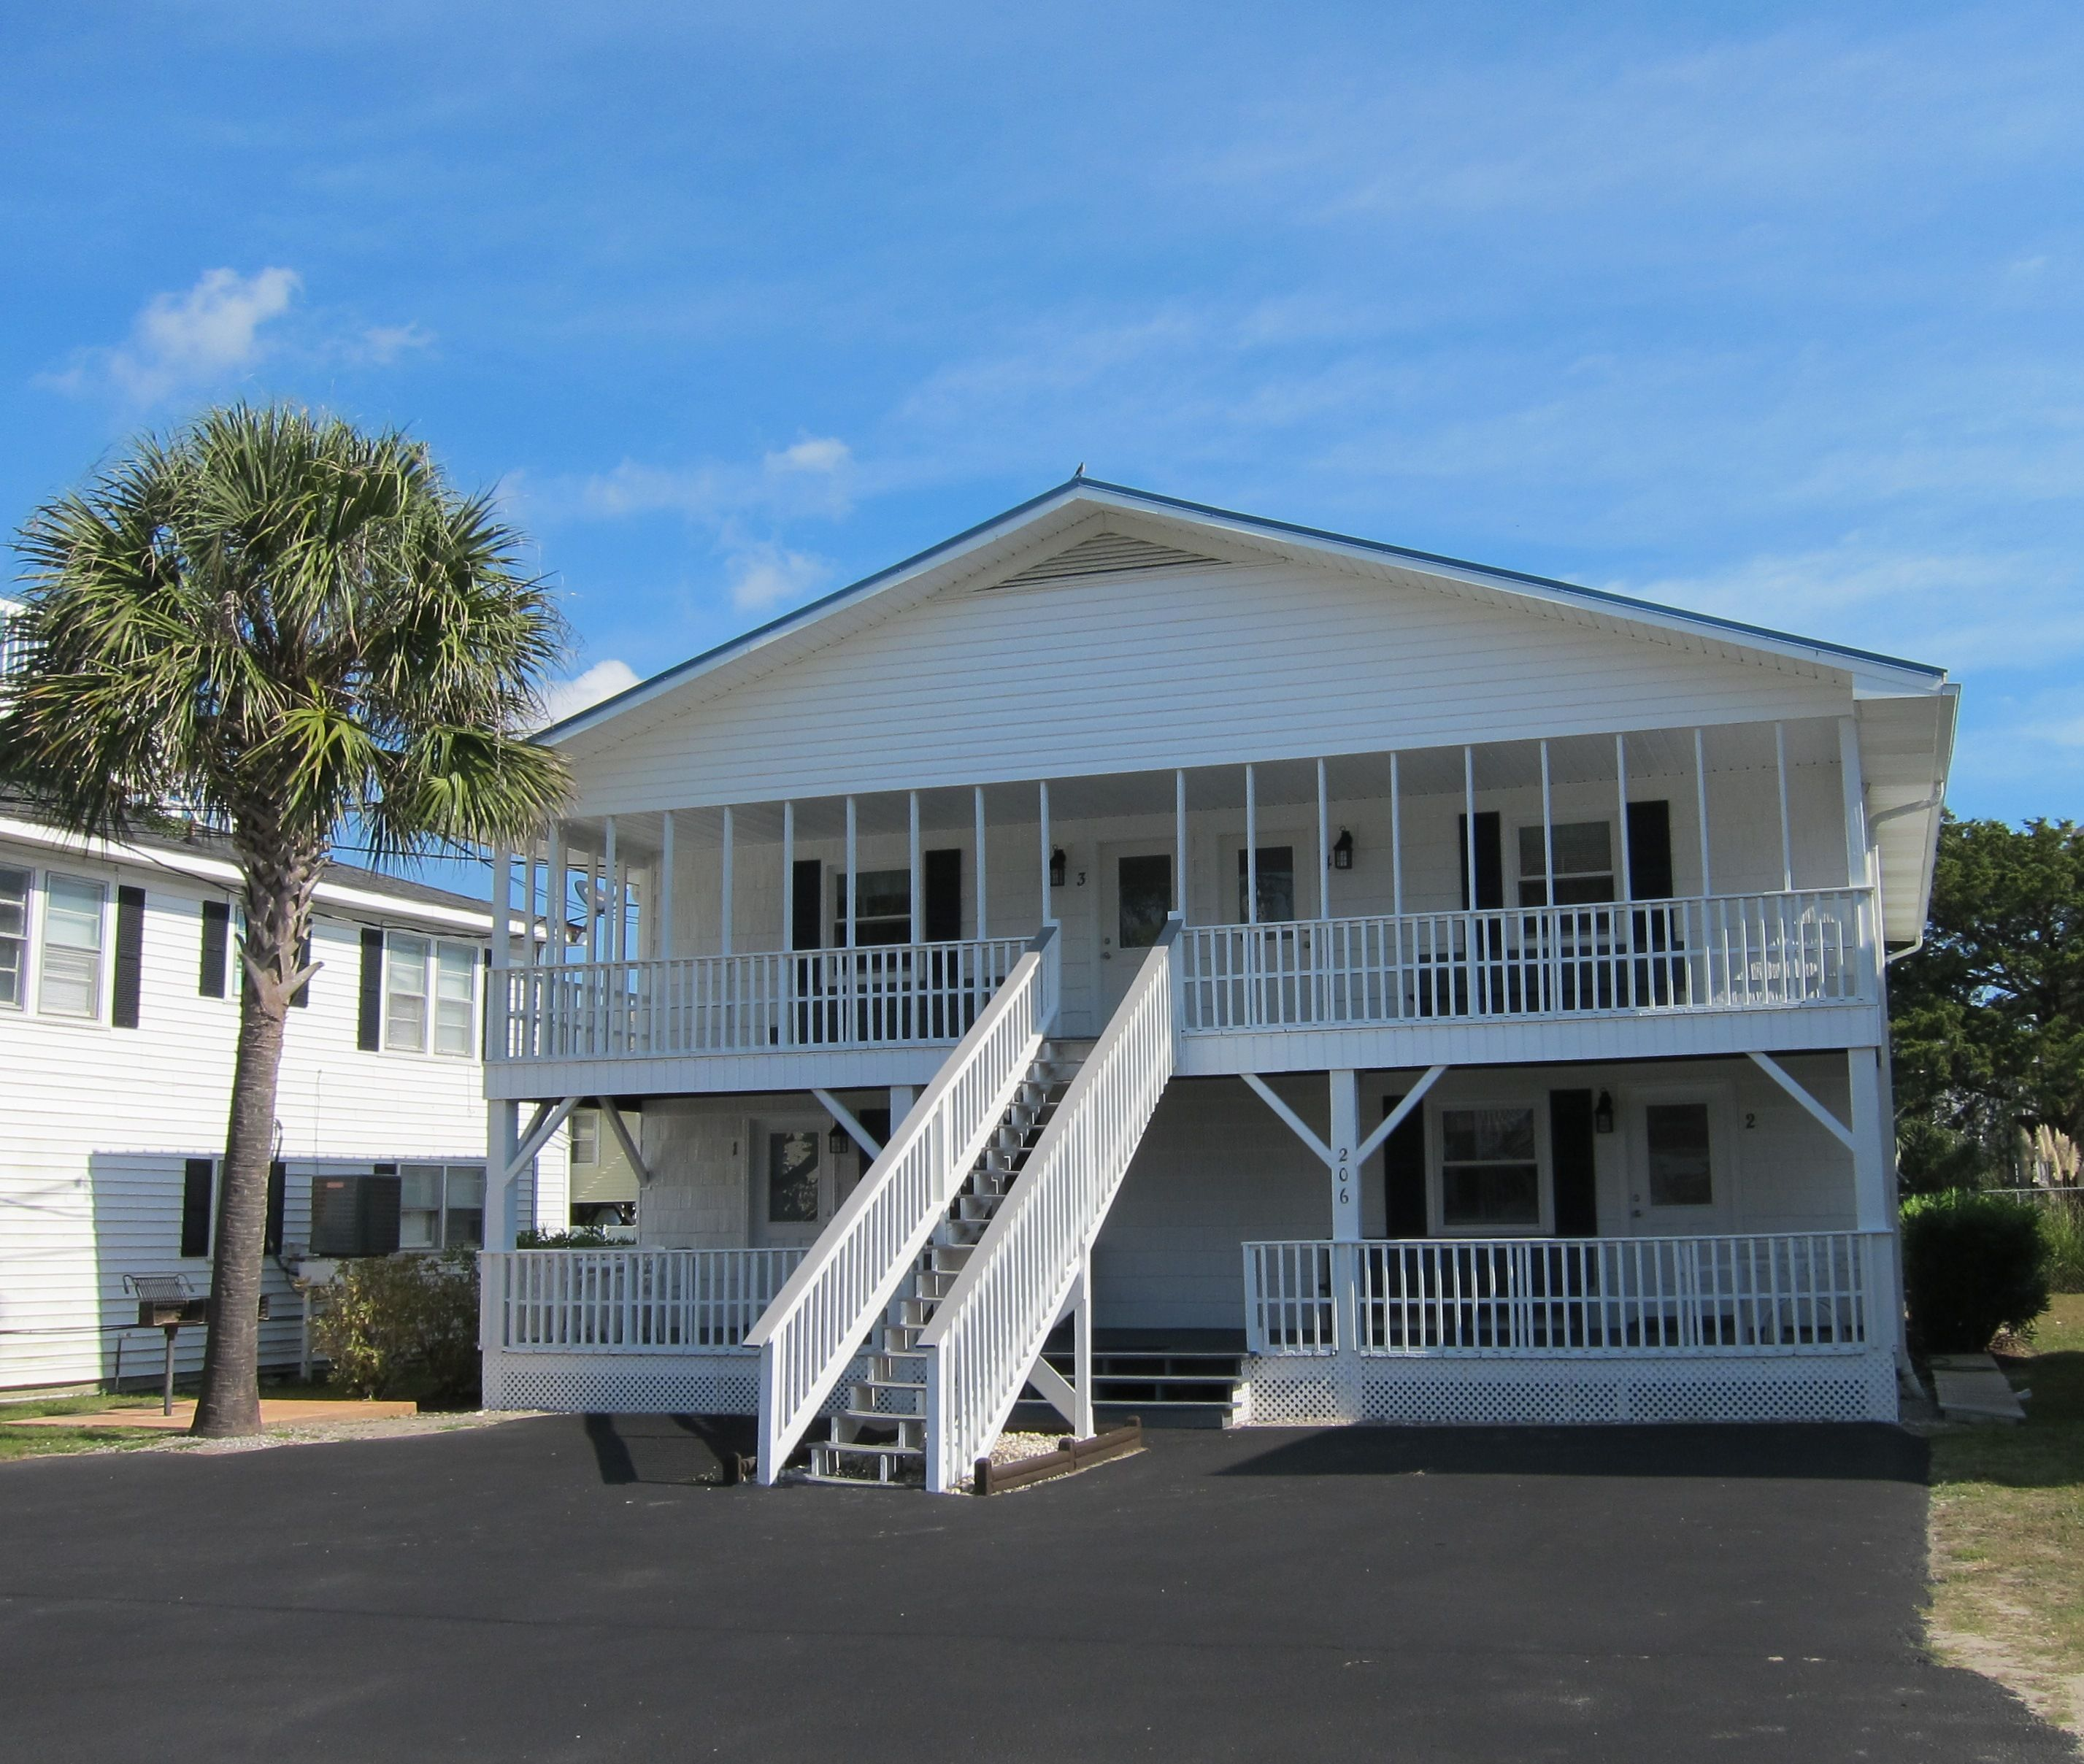 jpg church commons myrtle cottage wiki beach wikimedia sc trinity file cottages